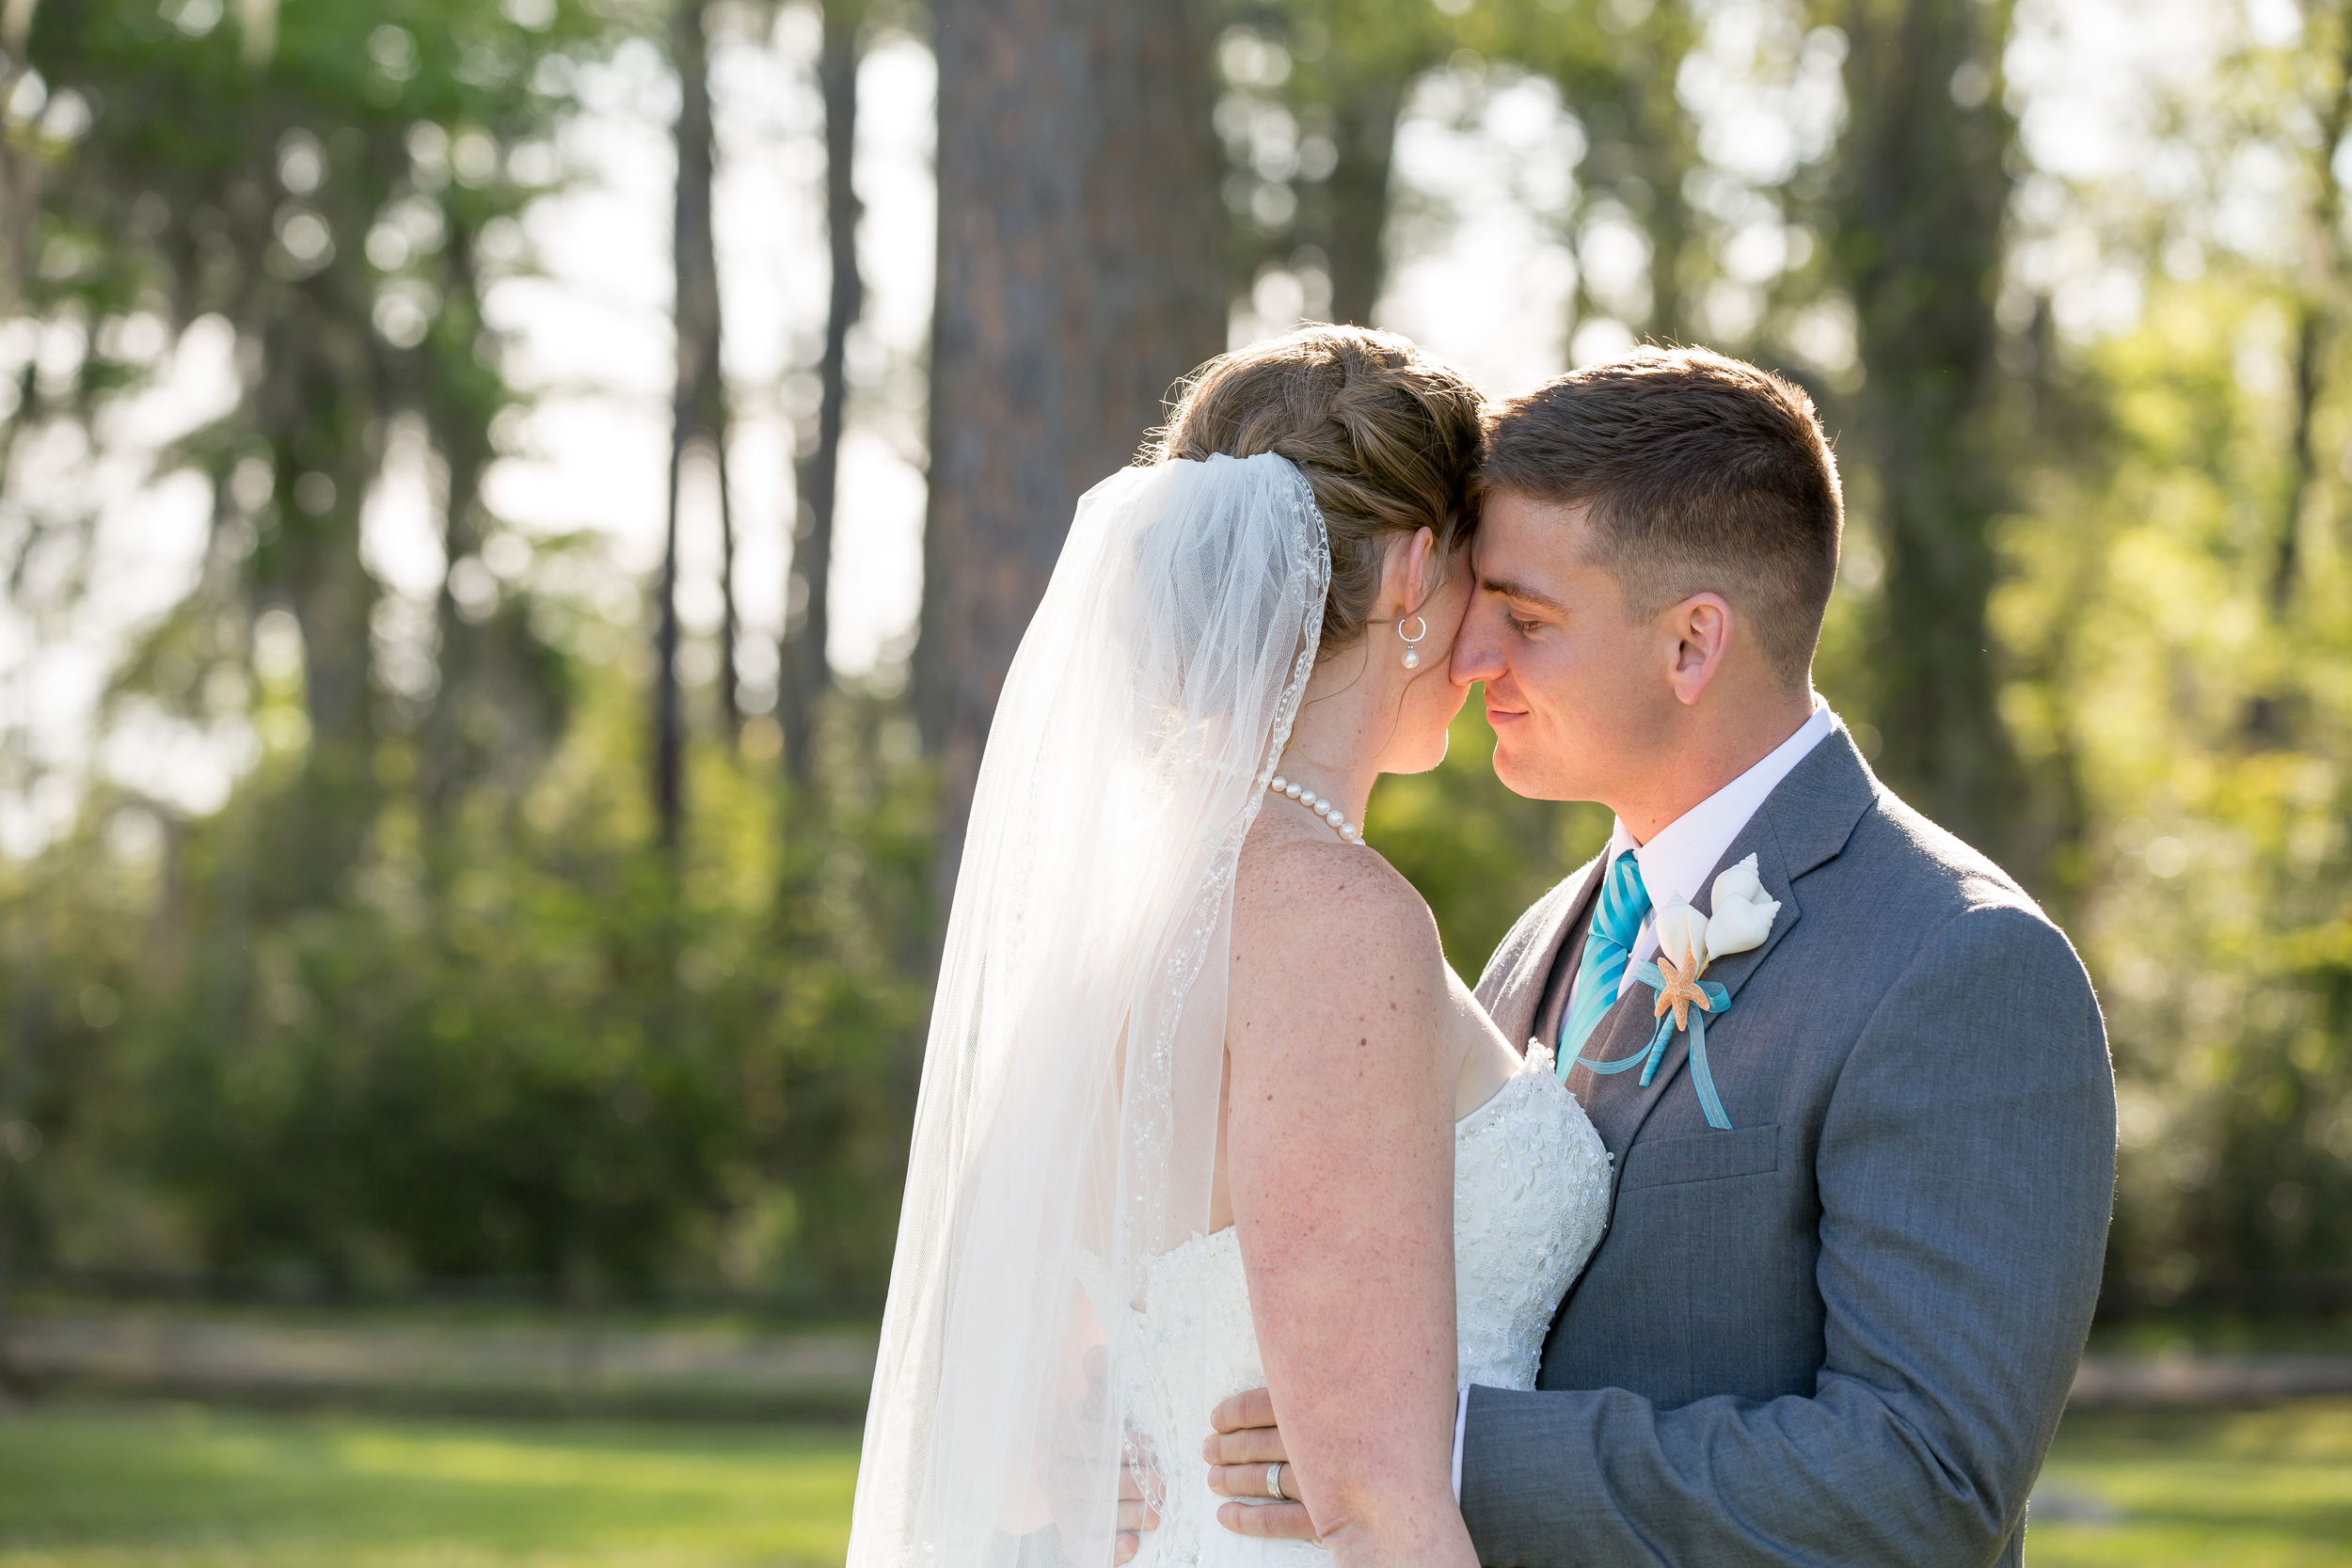 Wedding Photography Morehead NC